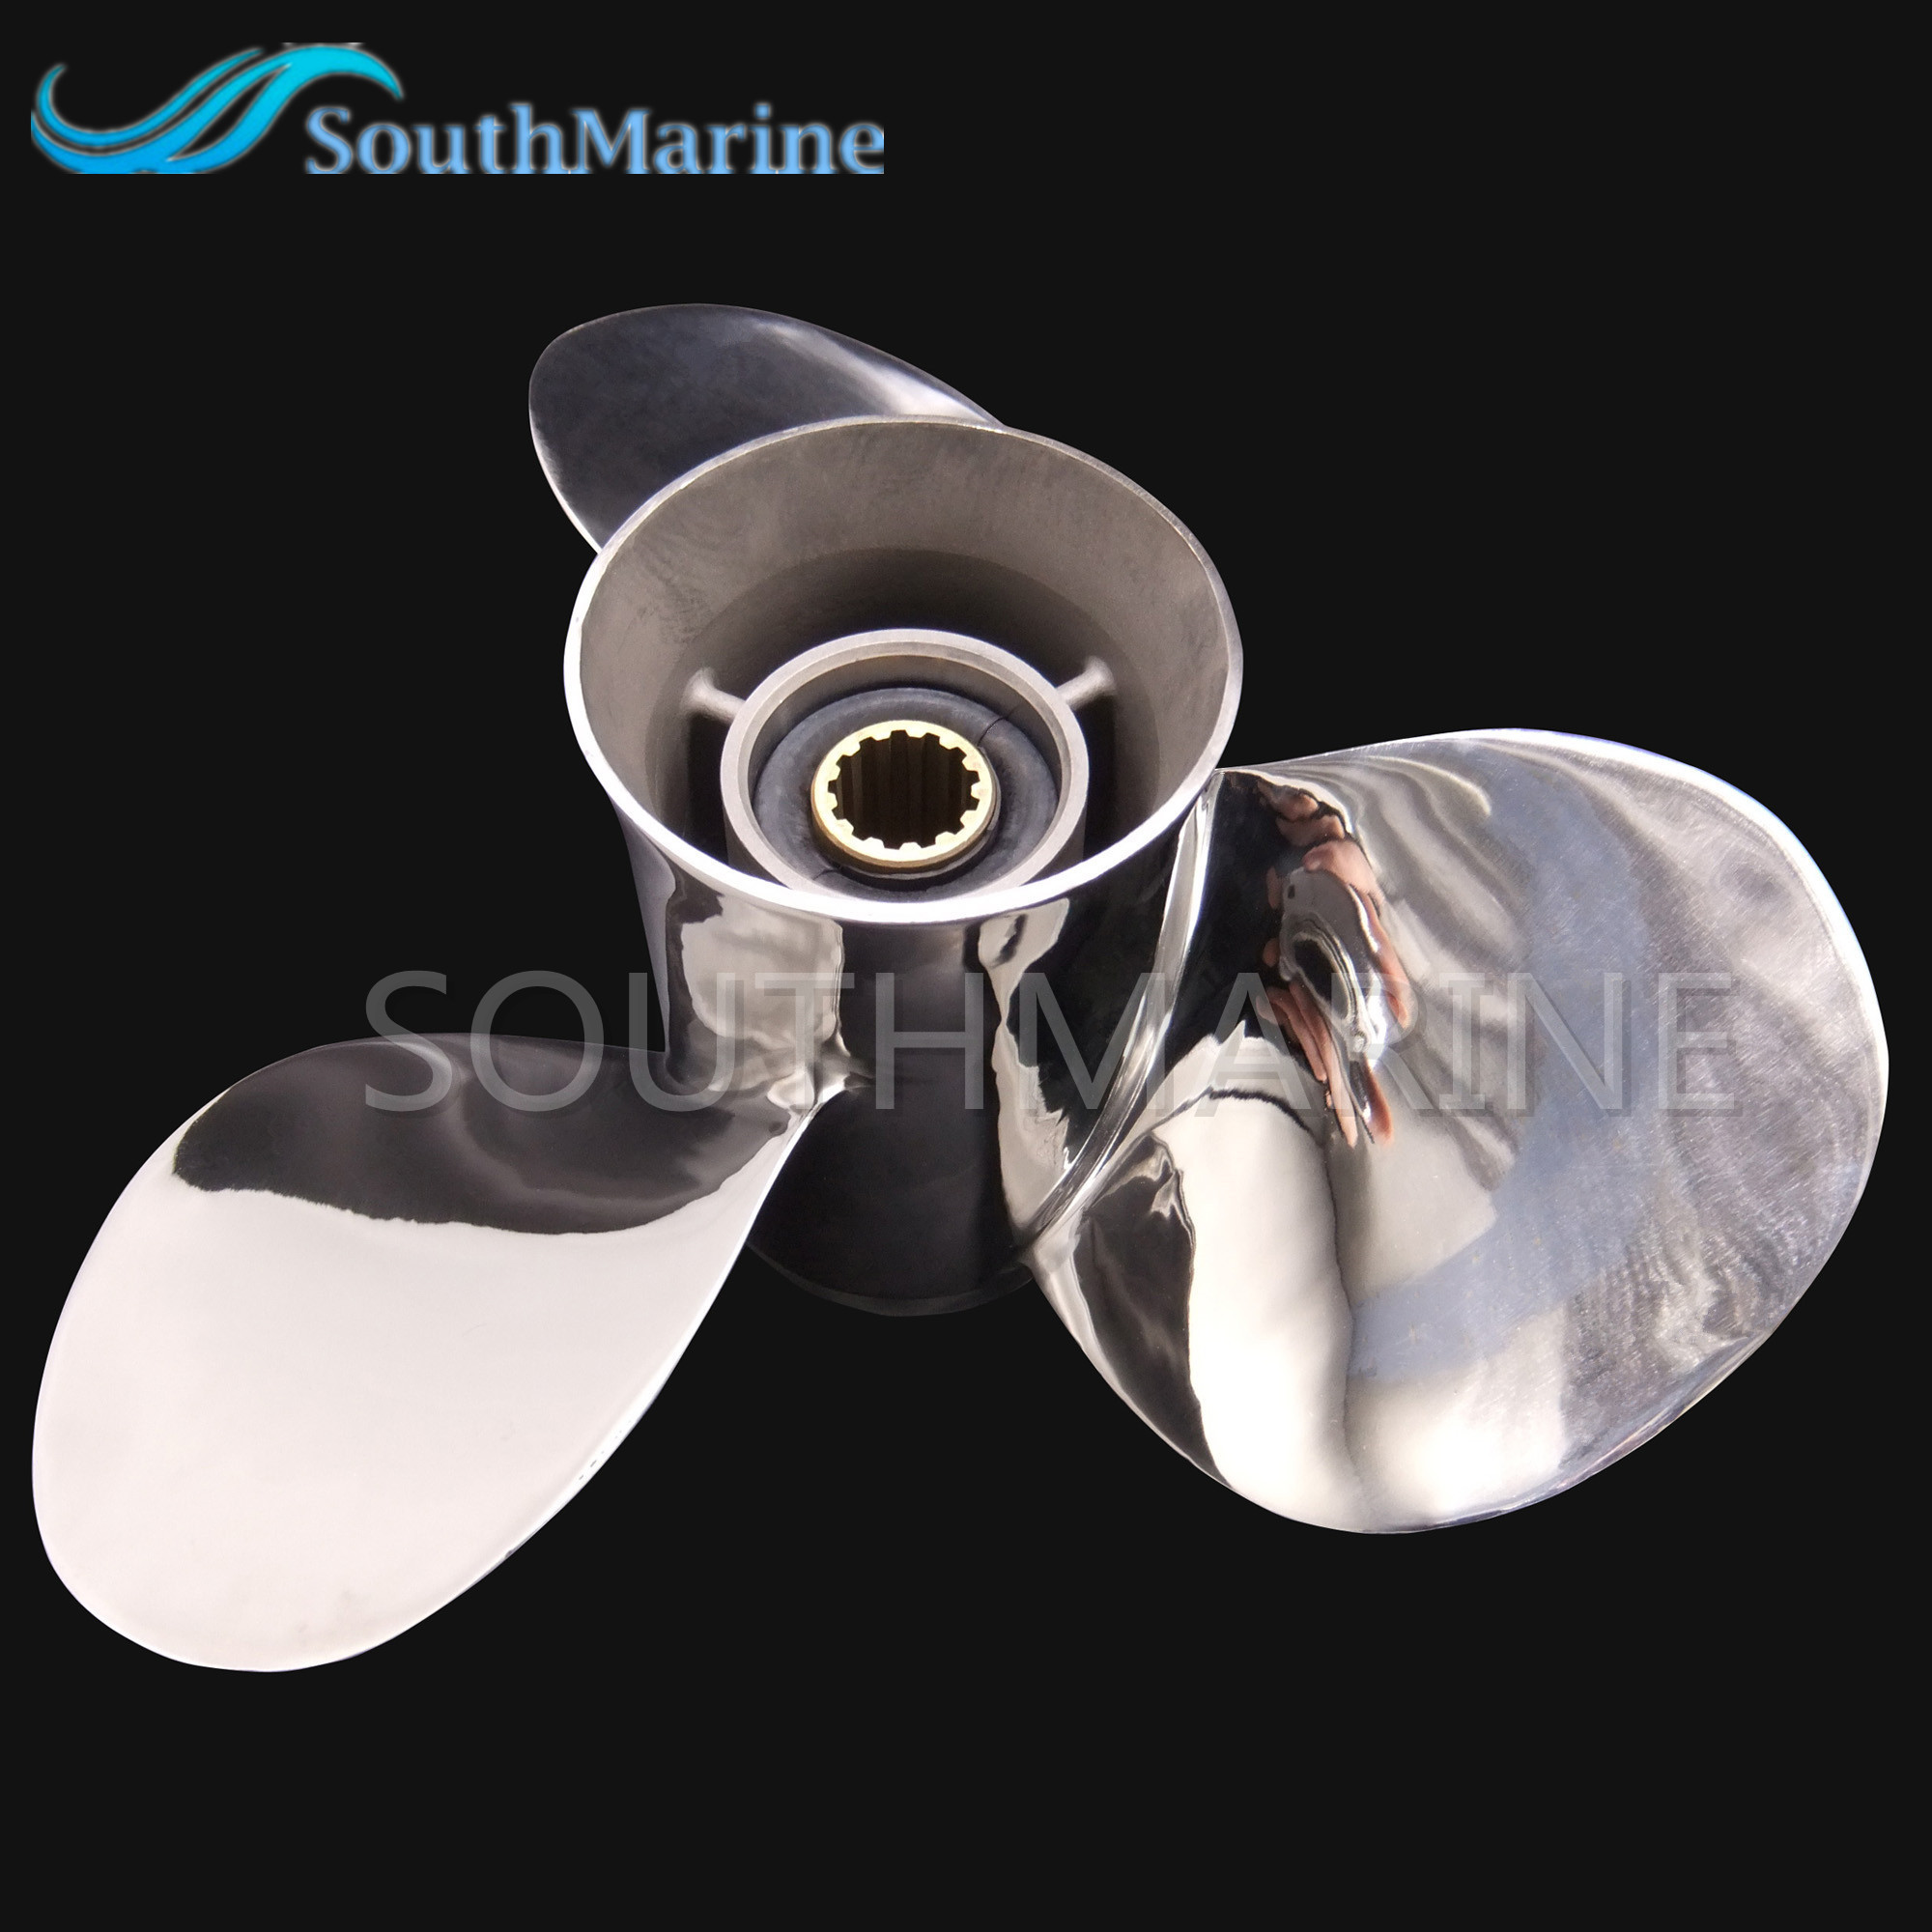 Stainless Steel Propeller 11 3/8x12-G For Yamaha 40HP 50HP Outboard Motor Boat Engine 11 3/8 x 12 -G 13 splines,Free Shipping